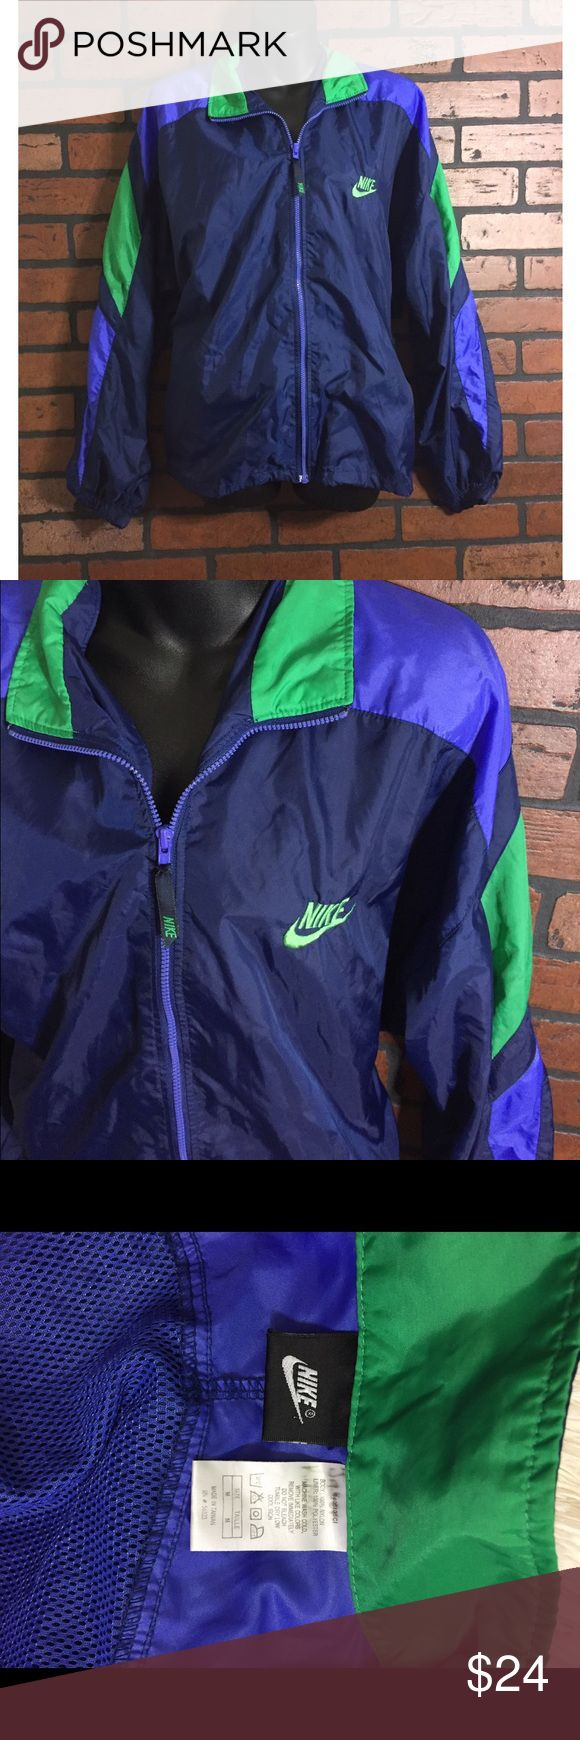 Vintage Nike Windbreaker Men's size medium, or fits women's large! Nike windbreaker. Has minor wear (shown in photo) but in overall good condition! Has two pockets that zip on the sides. Awesome jacket! Nike Jackets & Coats Windbreakers